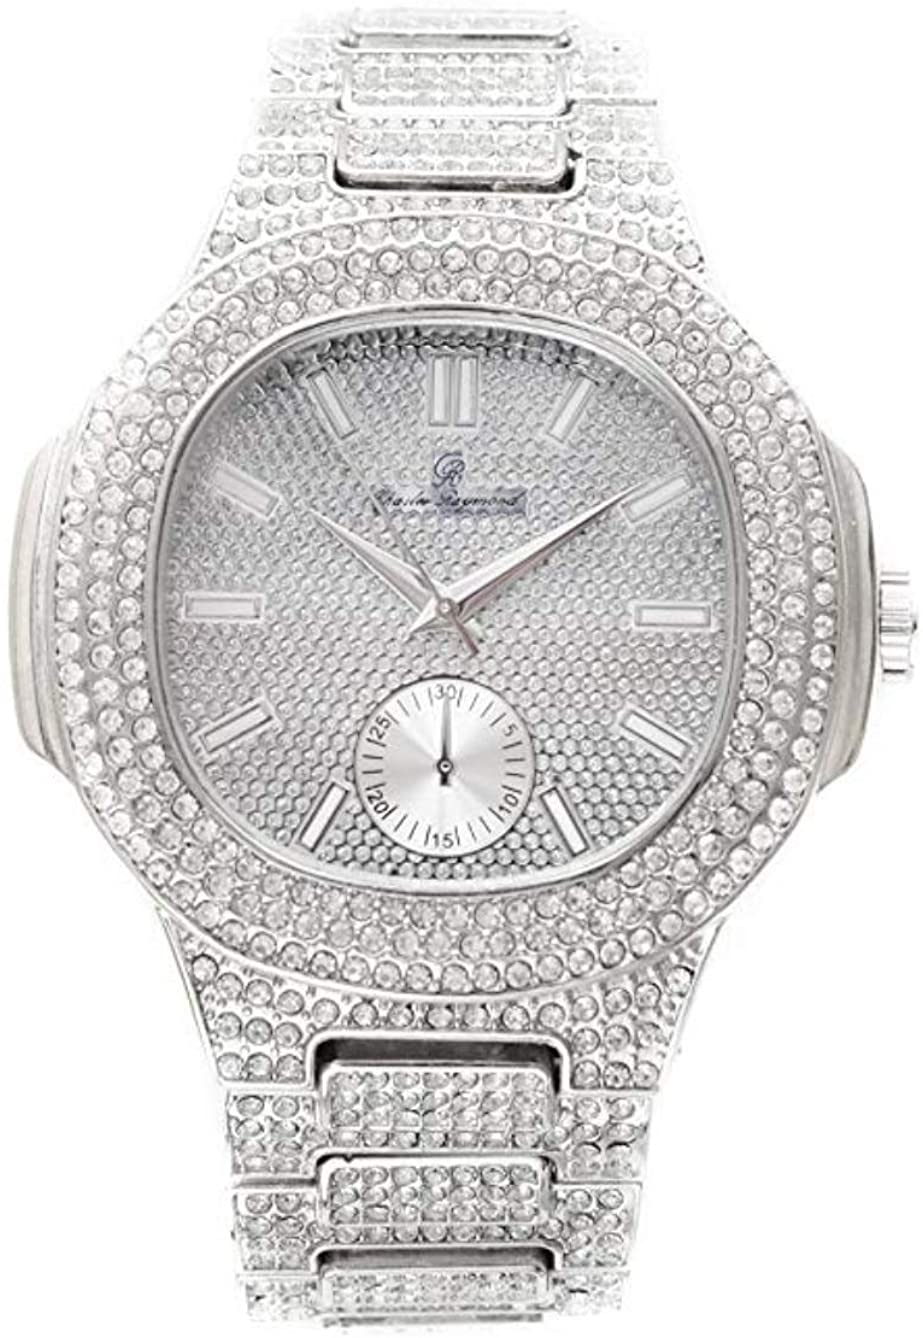 Bust Down AP Watch. Iced Out CZ Diamonds Gold Color Silver AP Hip Hop Watch Jewelry. Rapper Bling Rollie Skelton